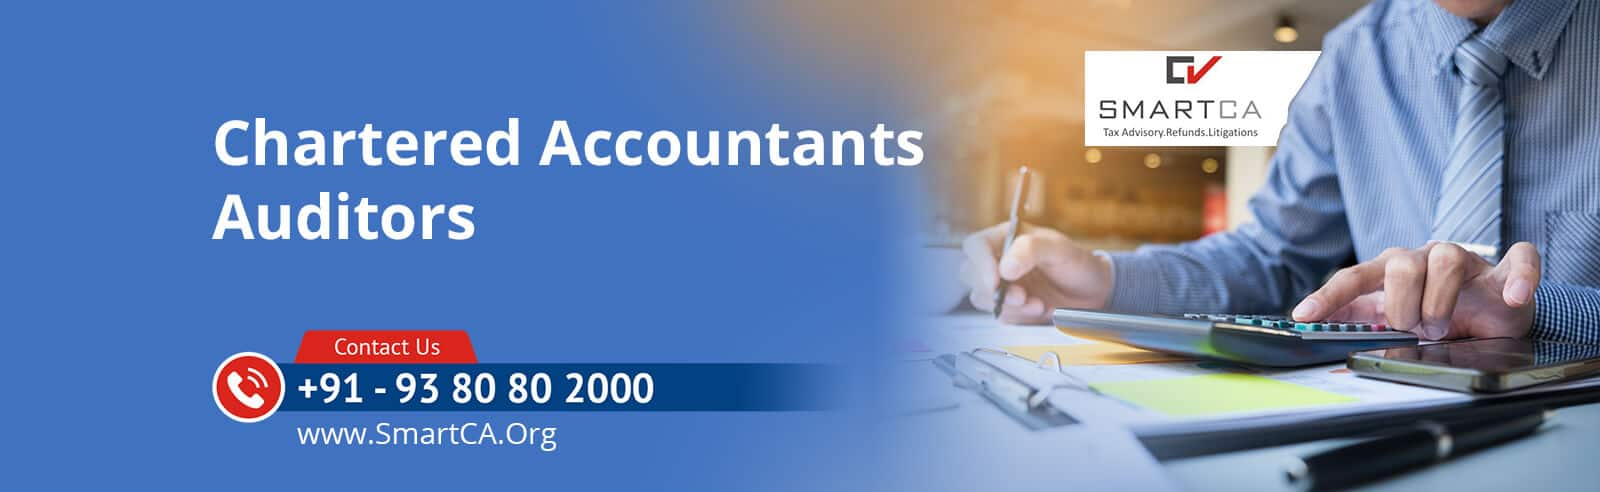 Auditors in Chennai INJAMBAKKAM